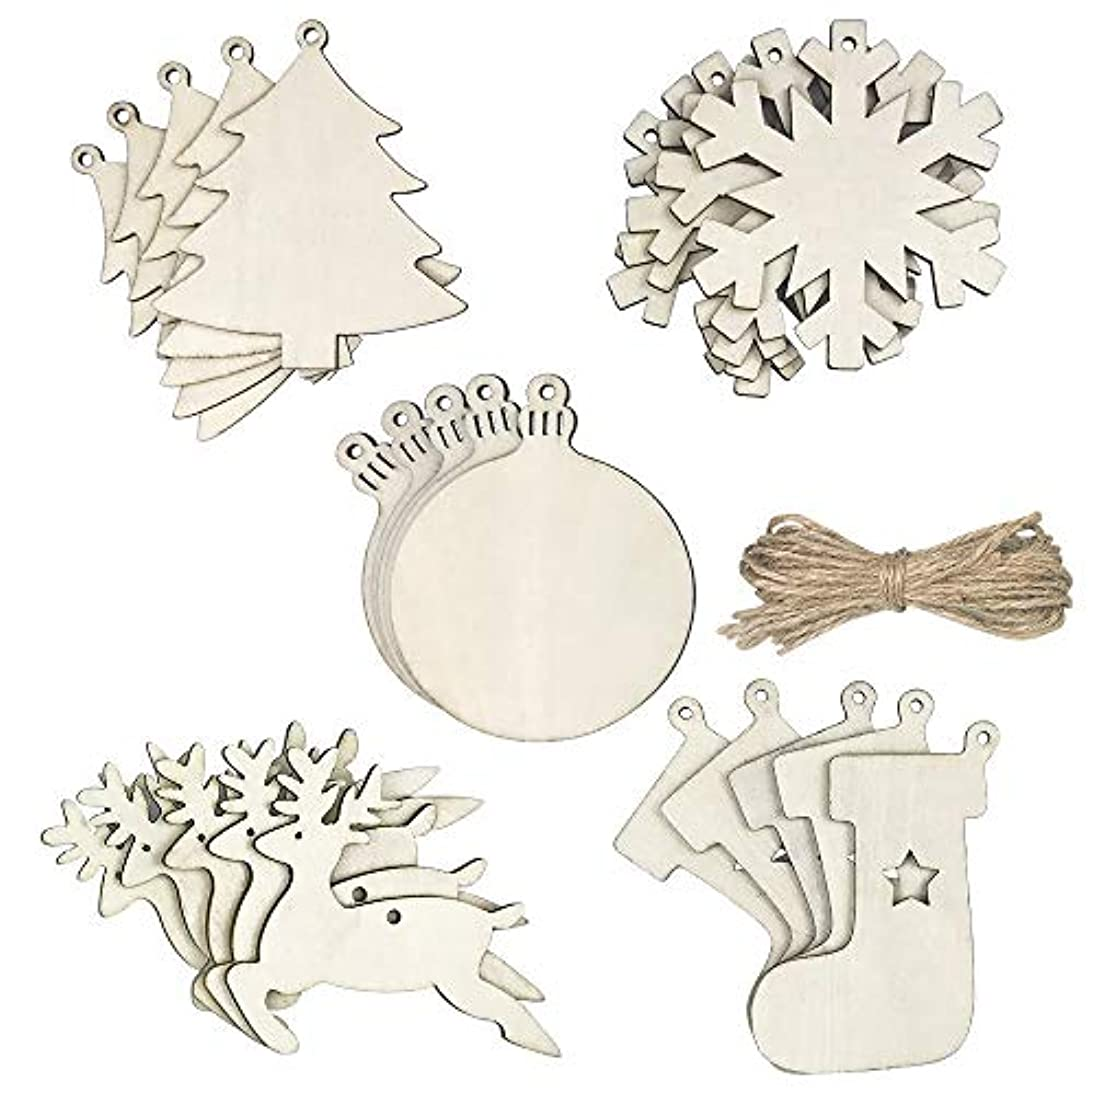 25 PCS Snowflake Reindeer Stocking Tree Round Wood Discs Shaped Unifinished Wood Slice Embellishments Hanging Ornaments Decoration with 25 Pieces Twines vzwt689631636377